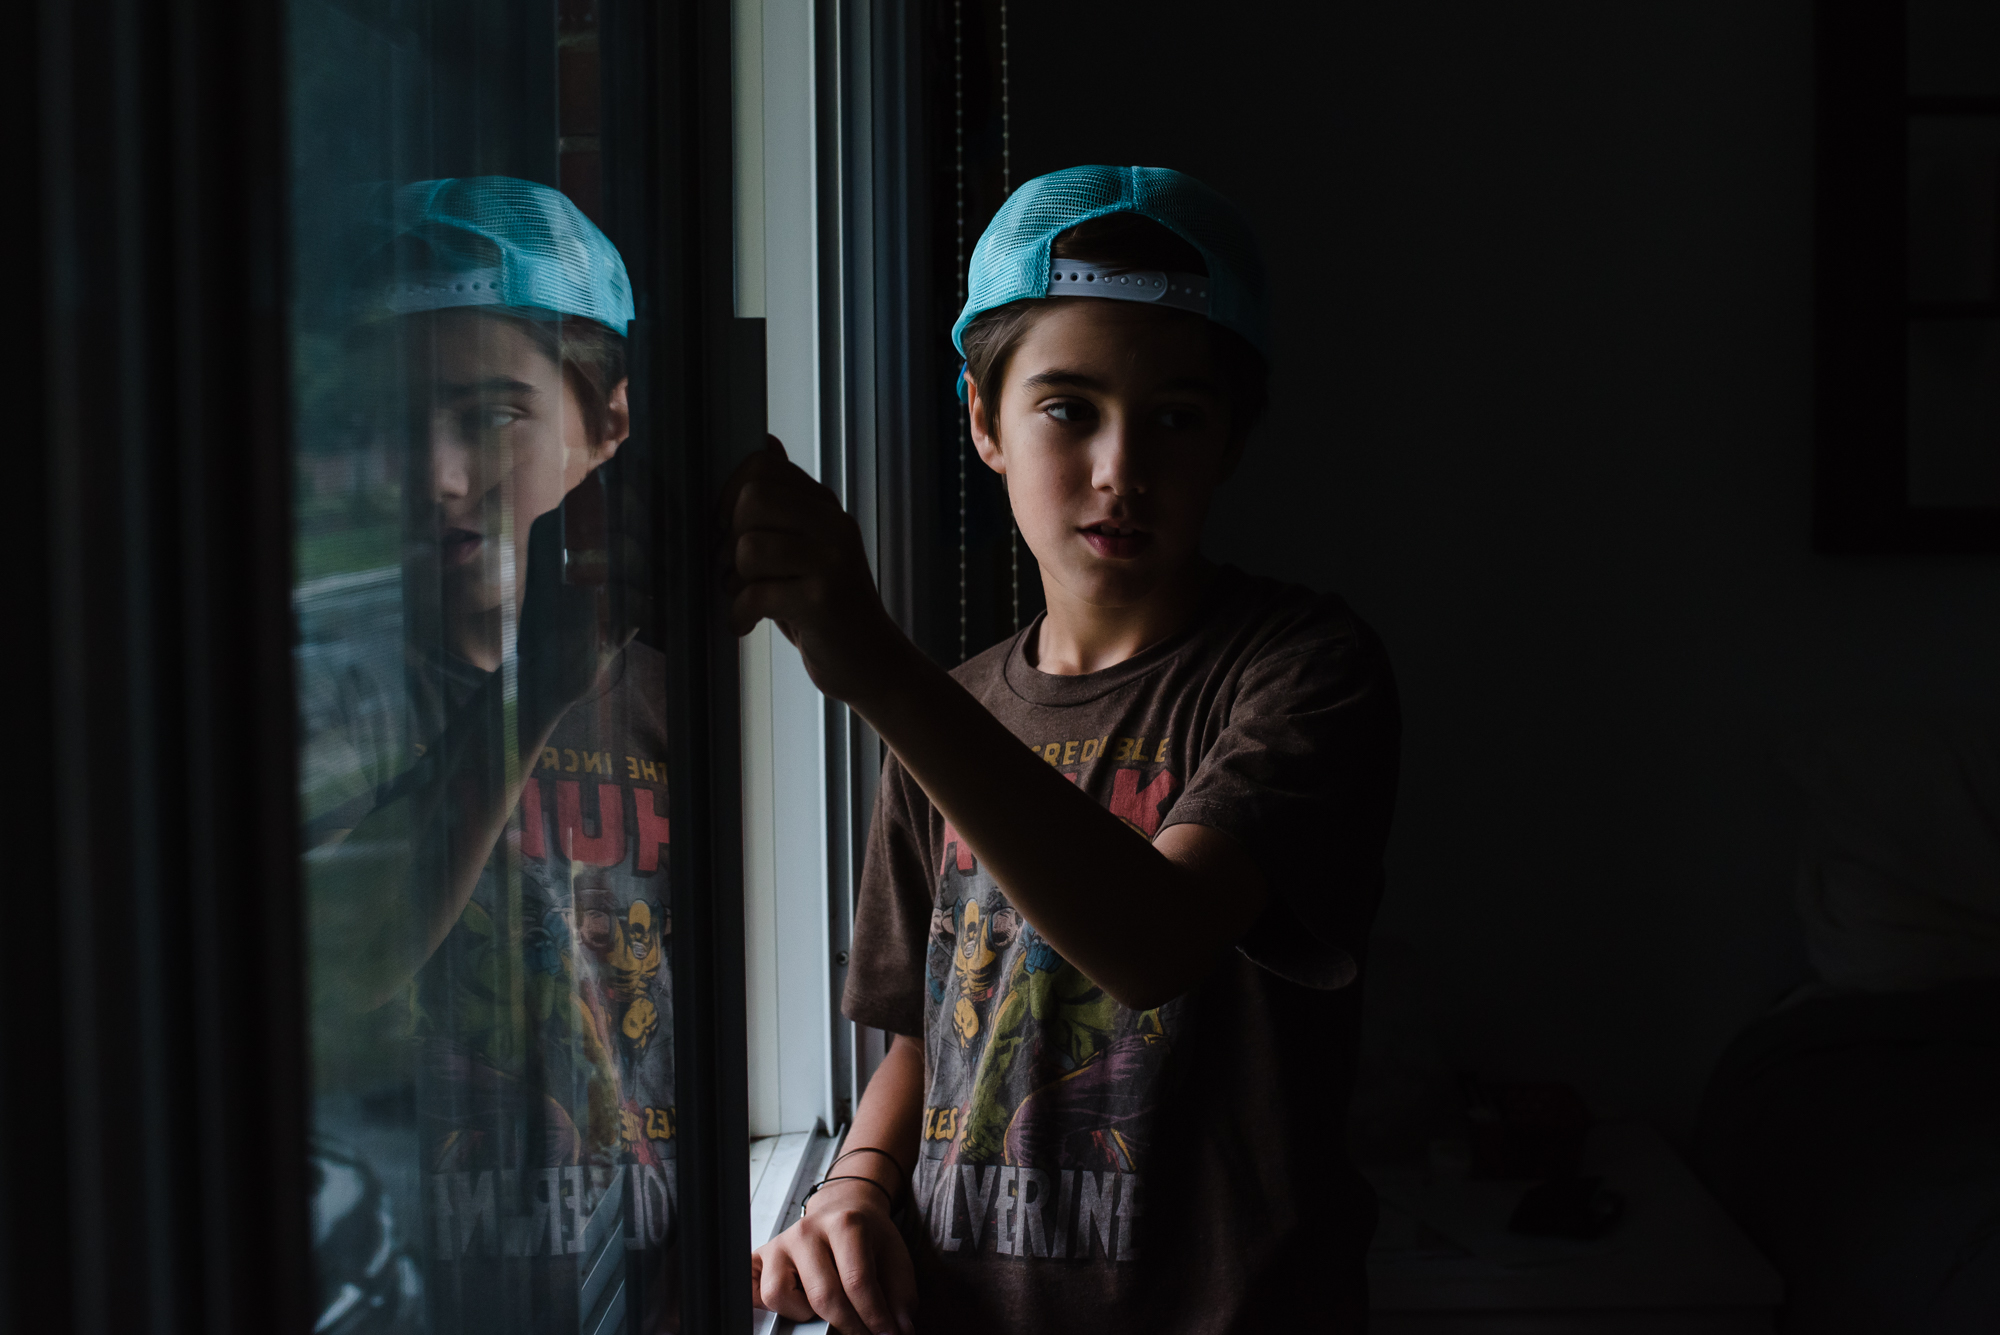 boy wearing a baseball cap opening a window with his reflection in the glass